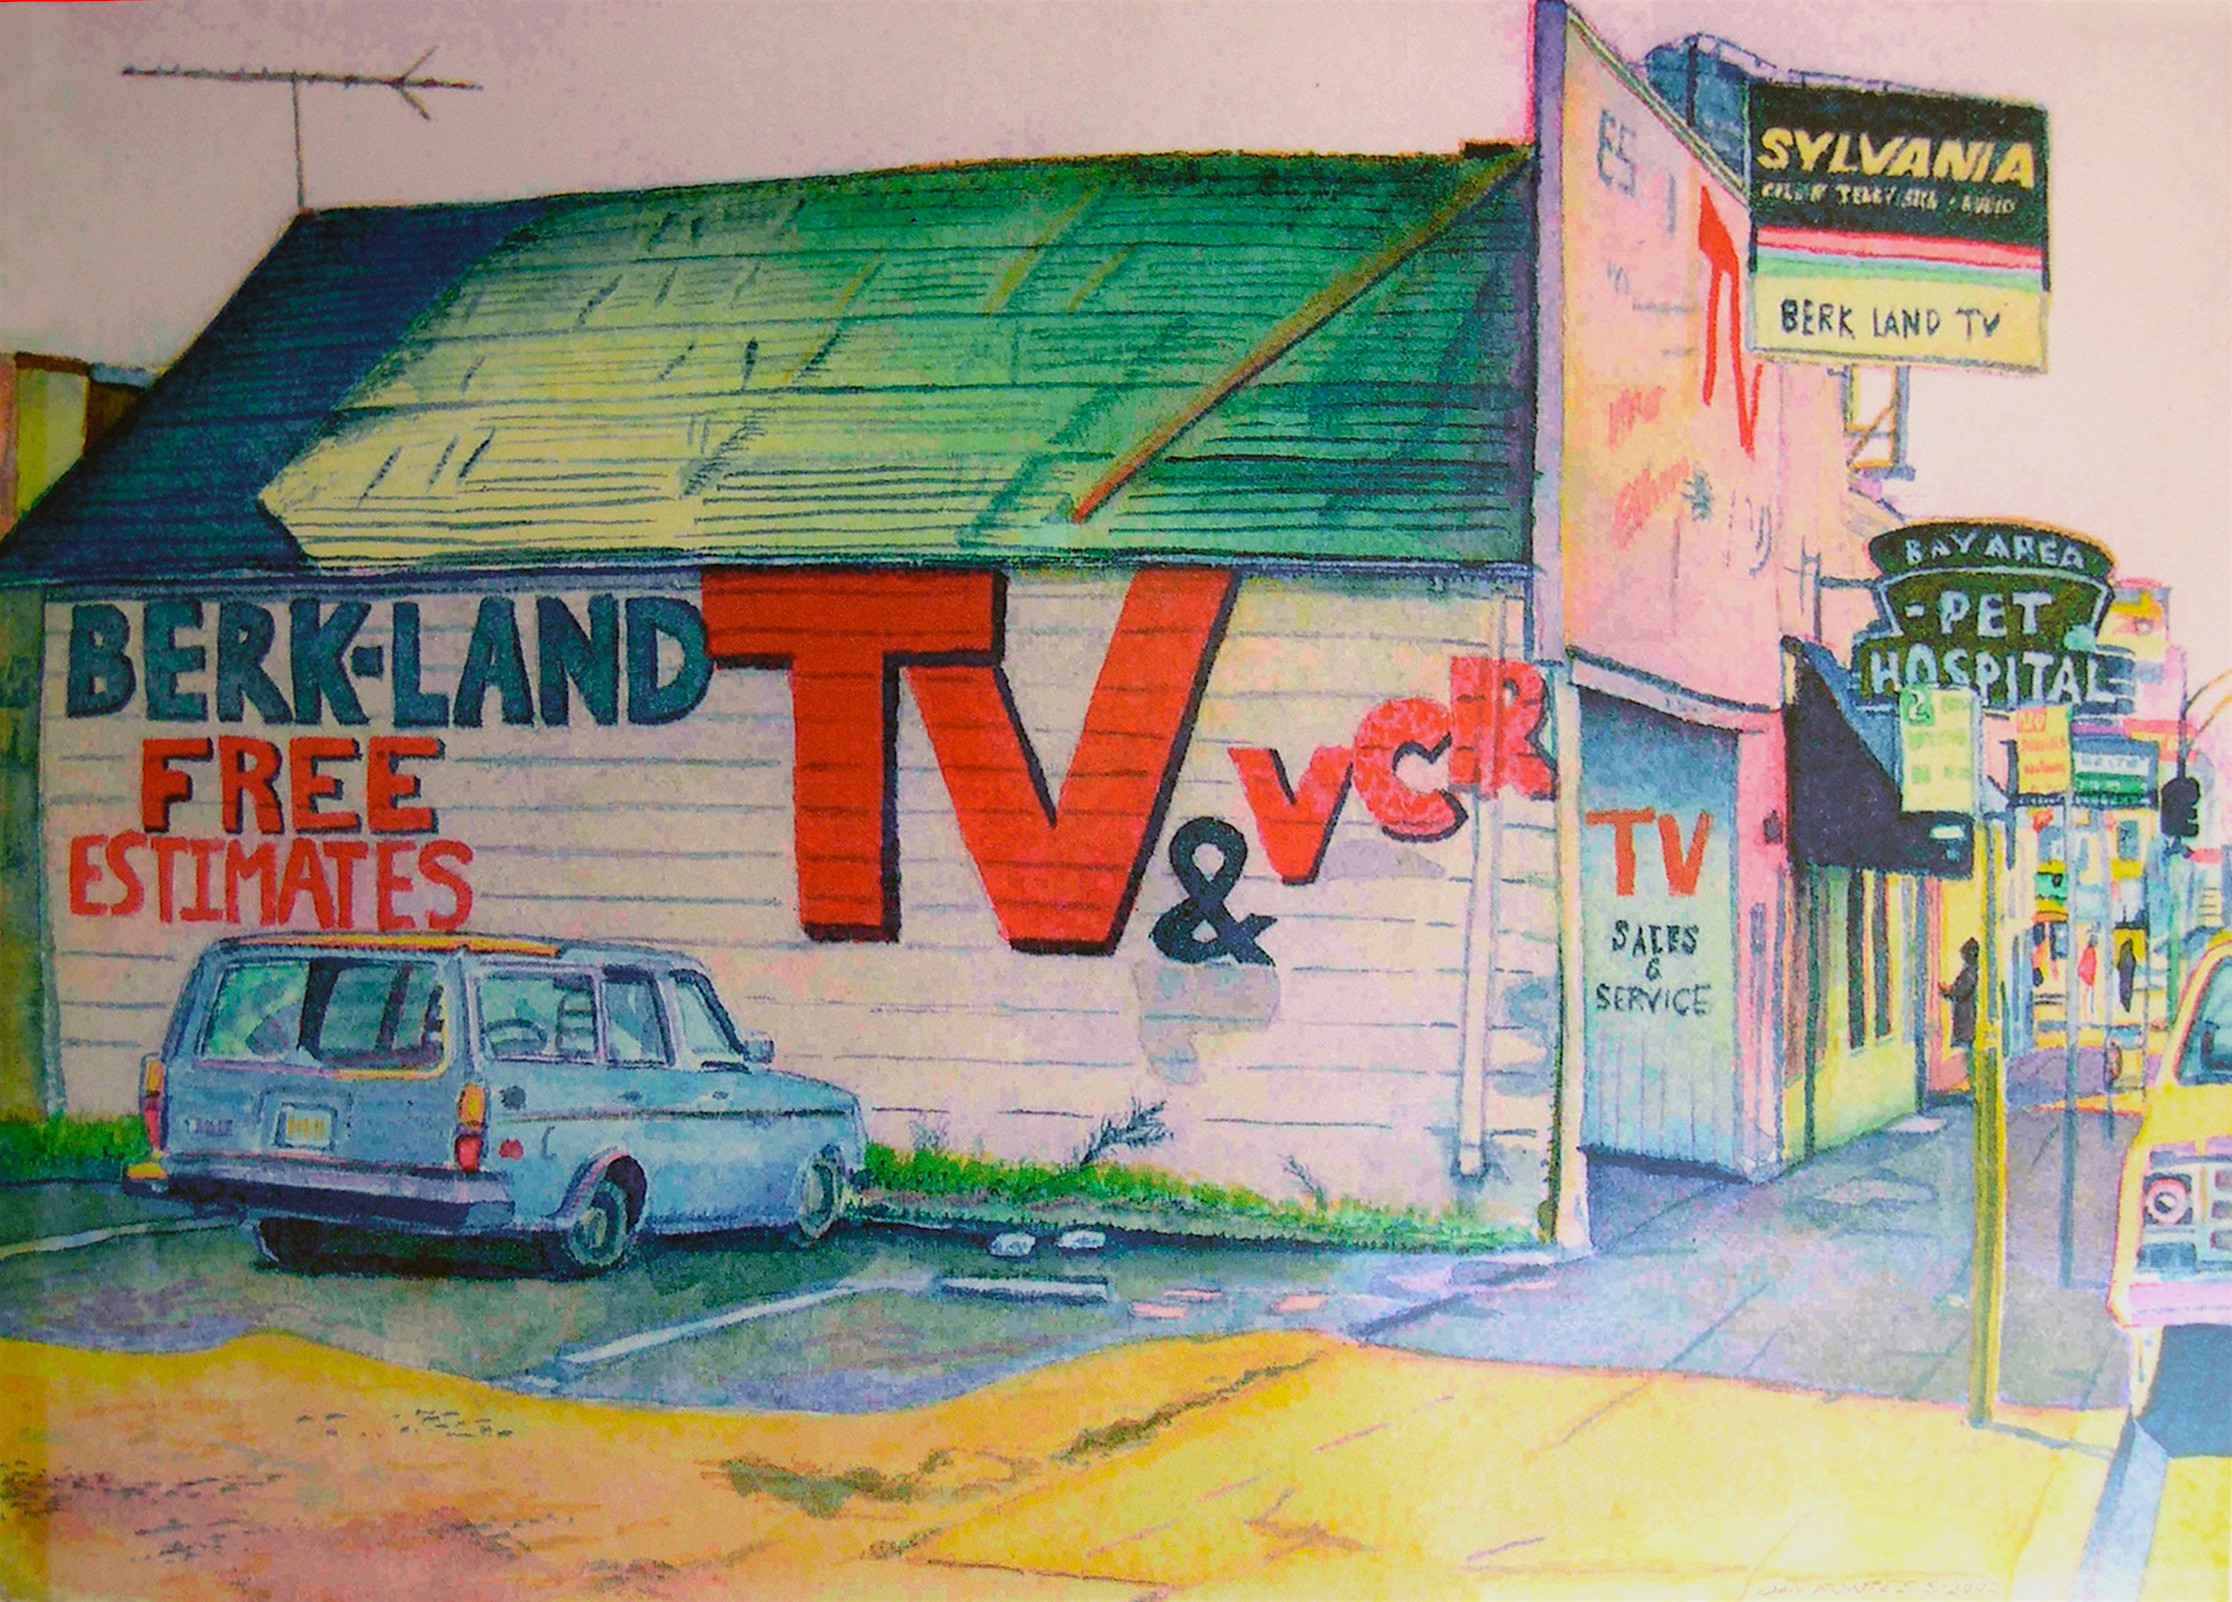 """Title: Berk-Land TV, Broadway & 51st, Oakland 2002    Media: Watercolors    Dimensions: 8"""" x 11""""    Collection of: Stephanie Russell, New York"""